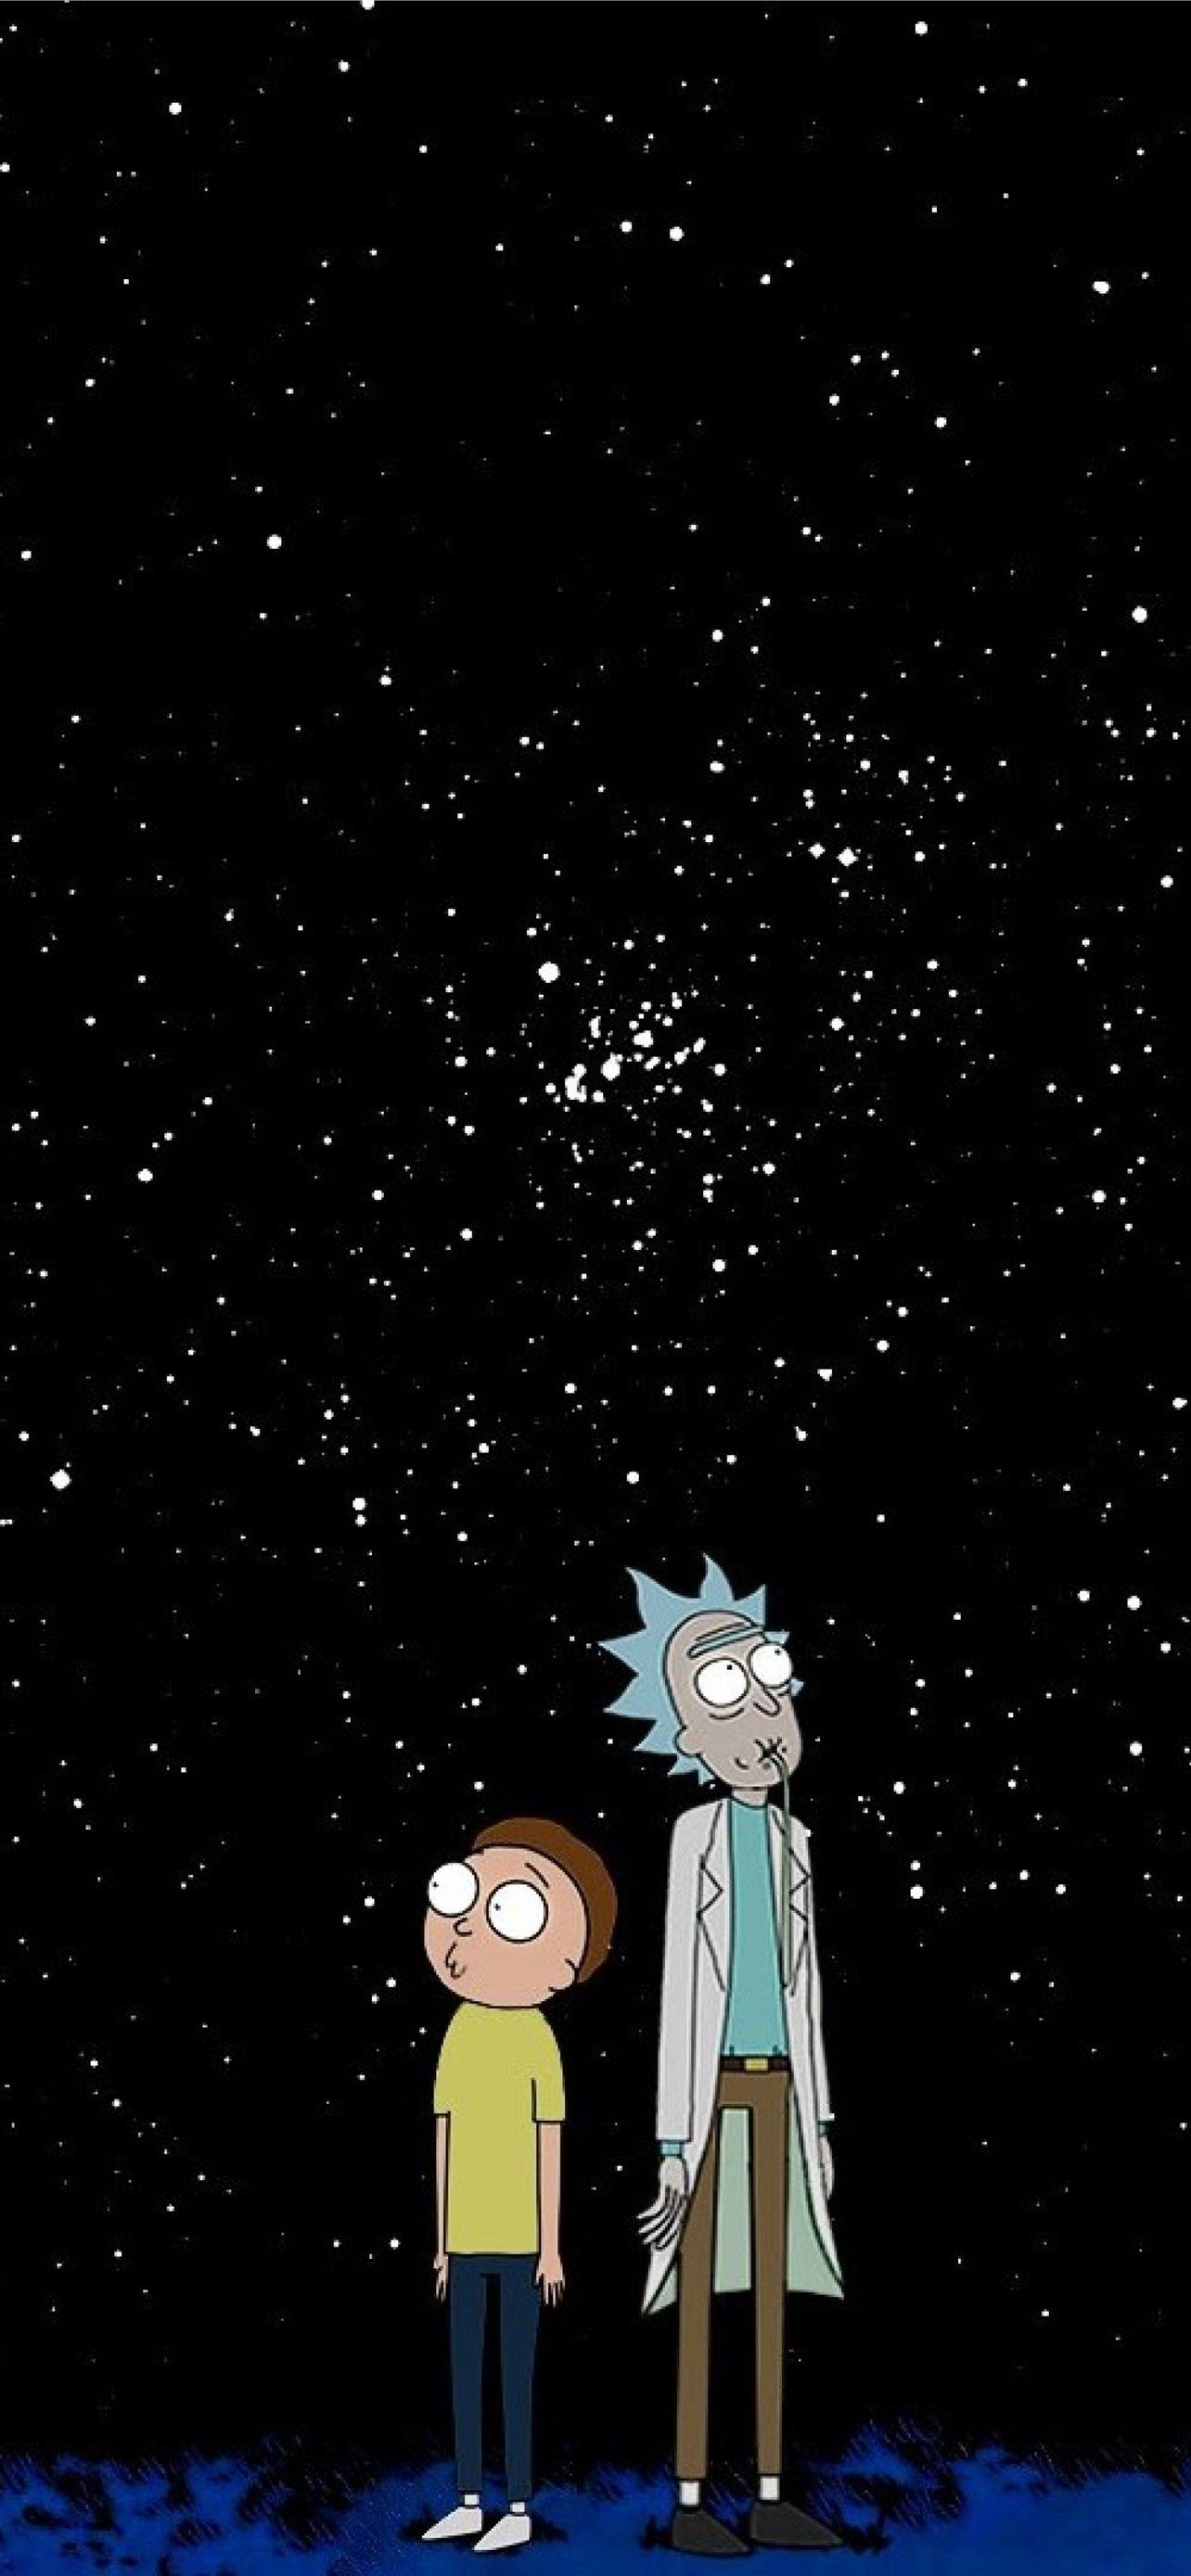 Best Rick and morty iPhone HD Wallpapers   iLikeWallpaper